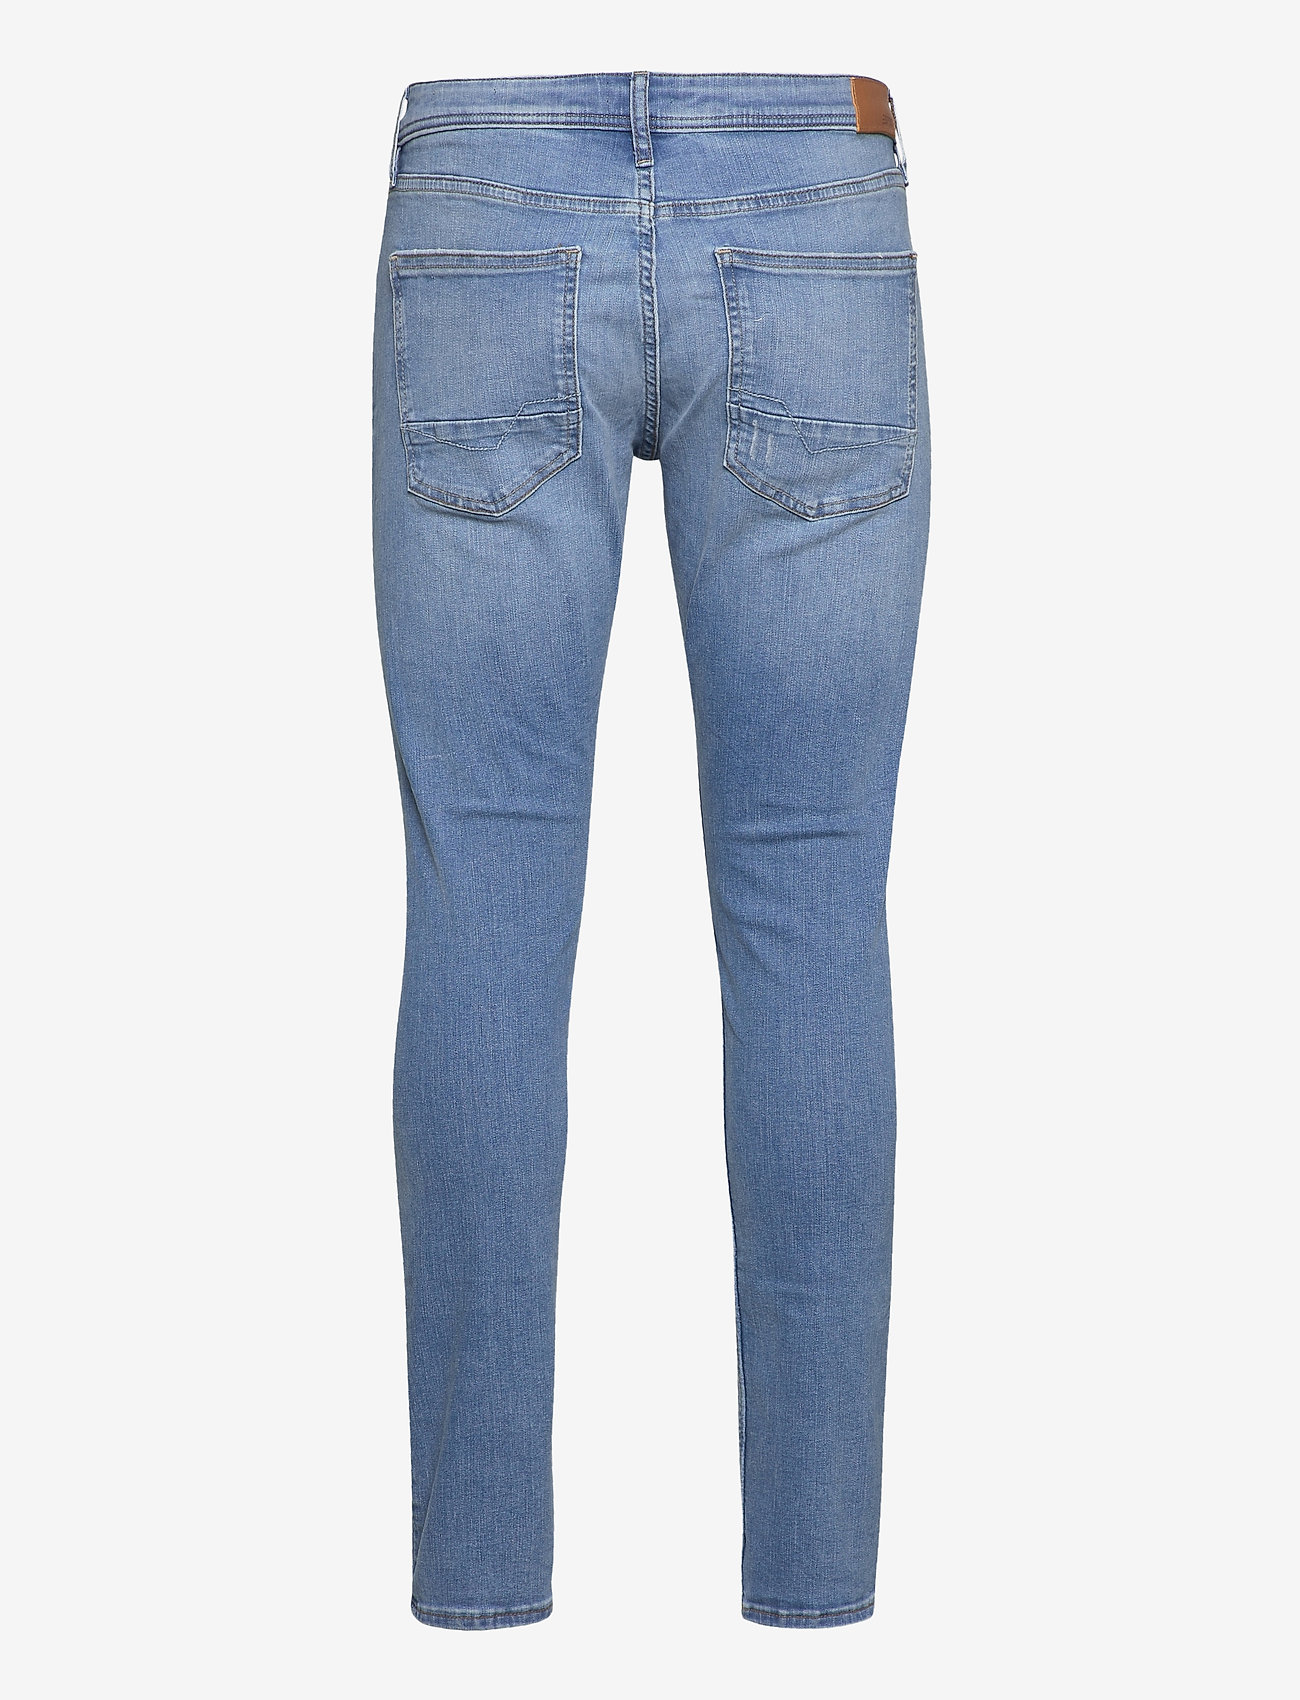 Esprit Casual Pants denim - Jeans BLUE LIGHT WASH - Menn Klær